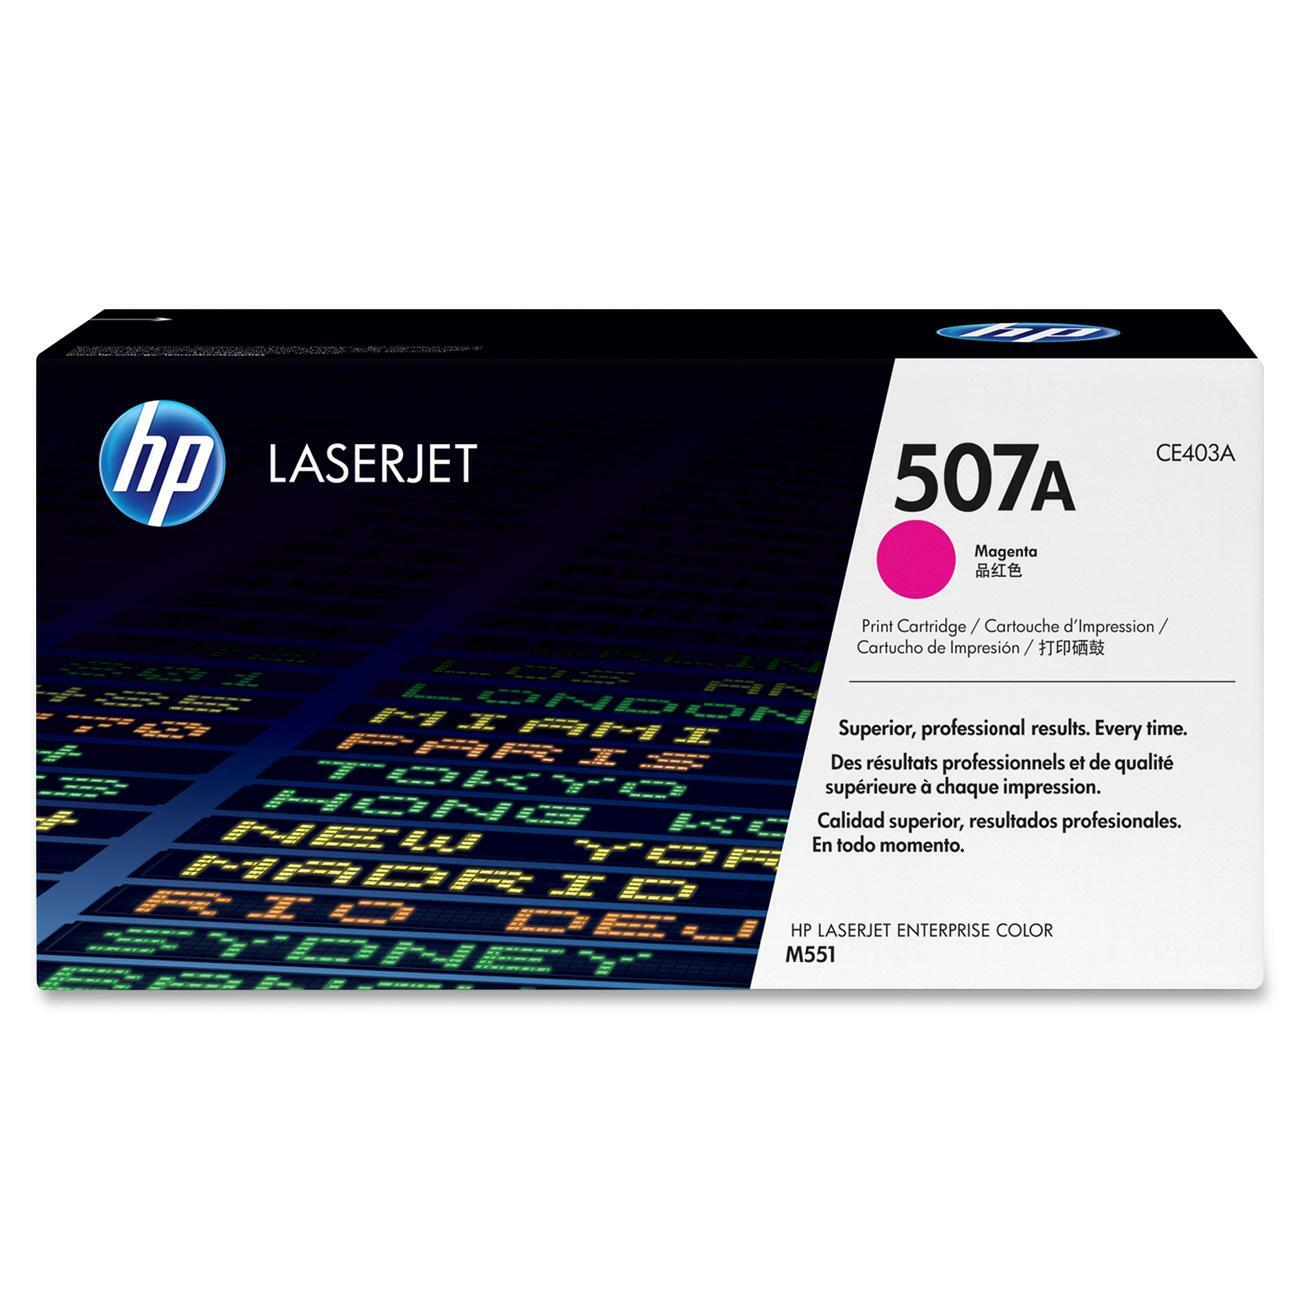 HP 507A Toner Cartridge - Magenta